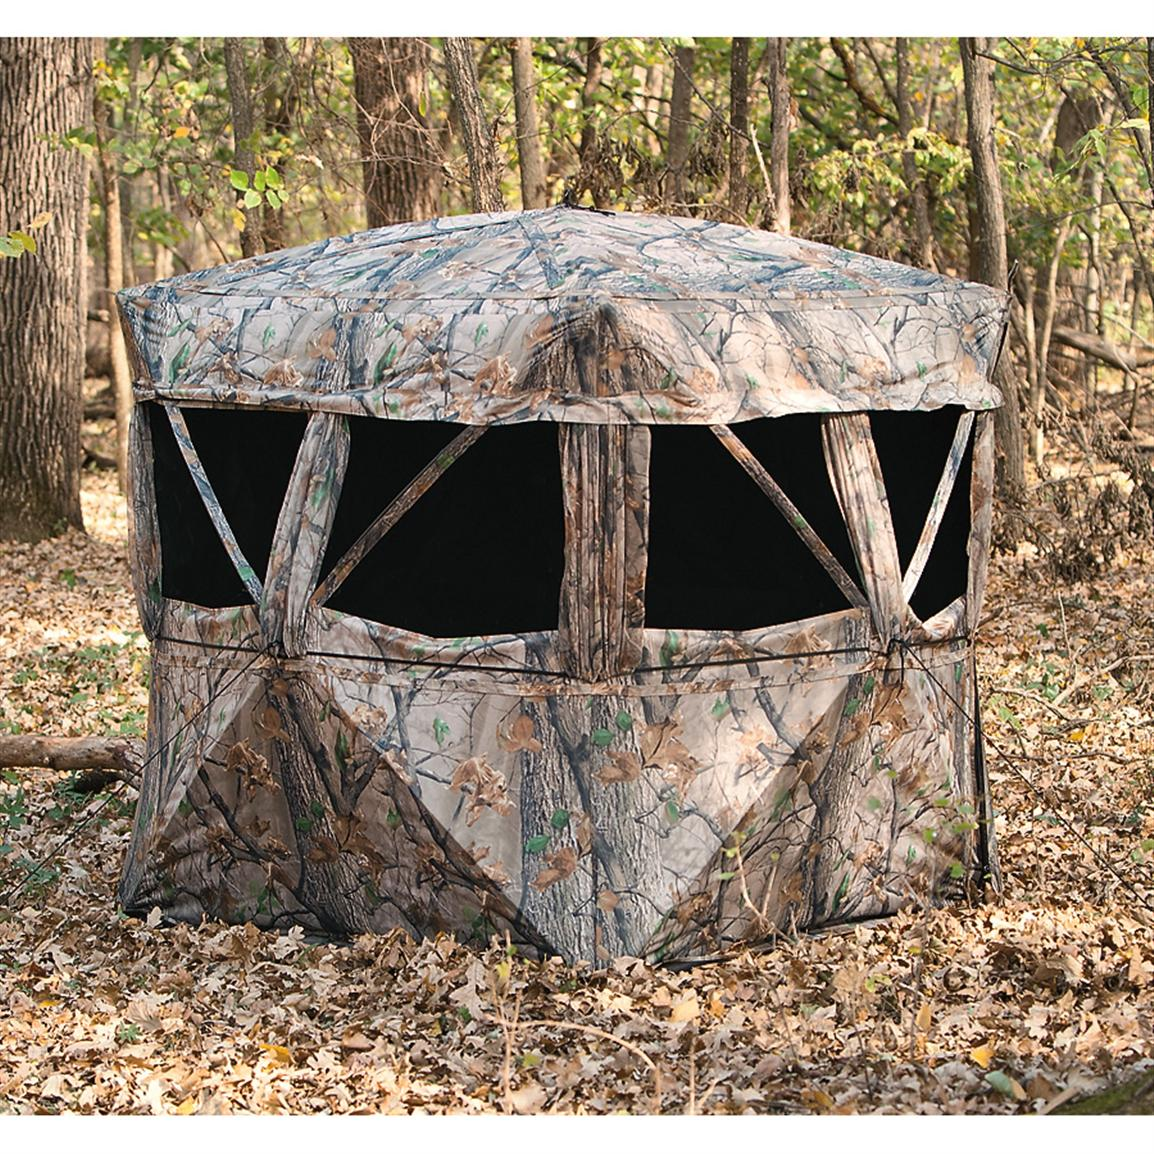 The VS360 6 1/2' x 6 1/2' 5-hub Ground Blind